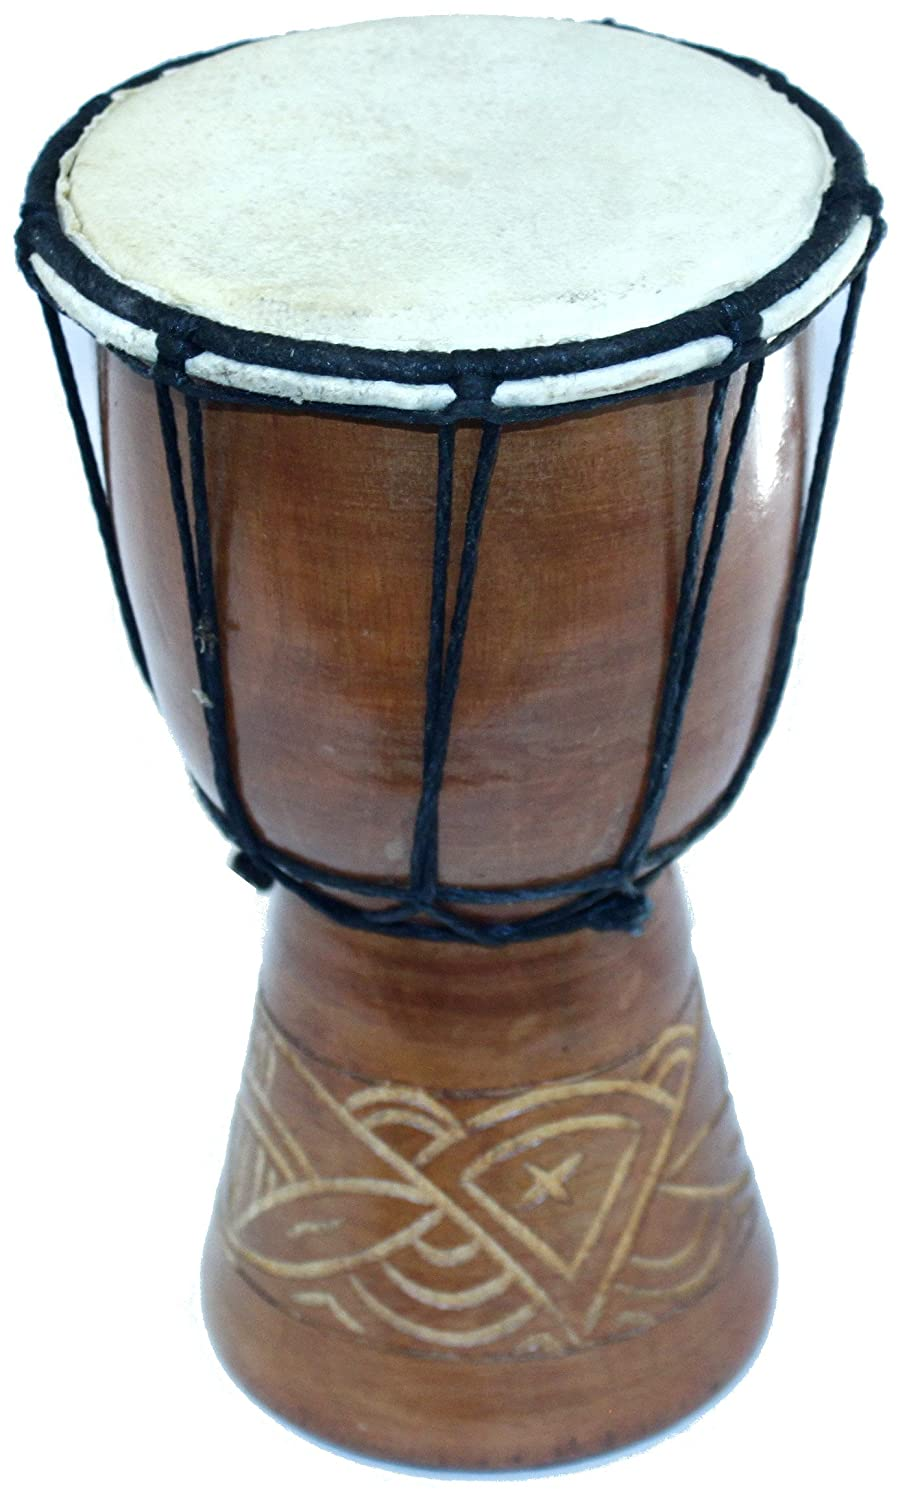 Djembe or Jembe Drum With nature and Animals carving from Jerusalem - Small ( 19cm or 7.5 Inches high ) by Holy Land Market Imported SmallTablaCarved